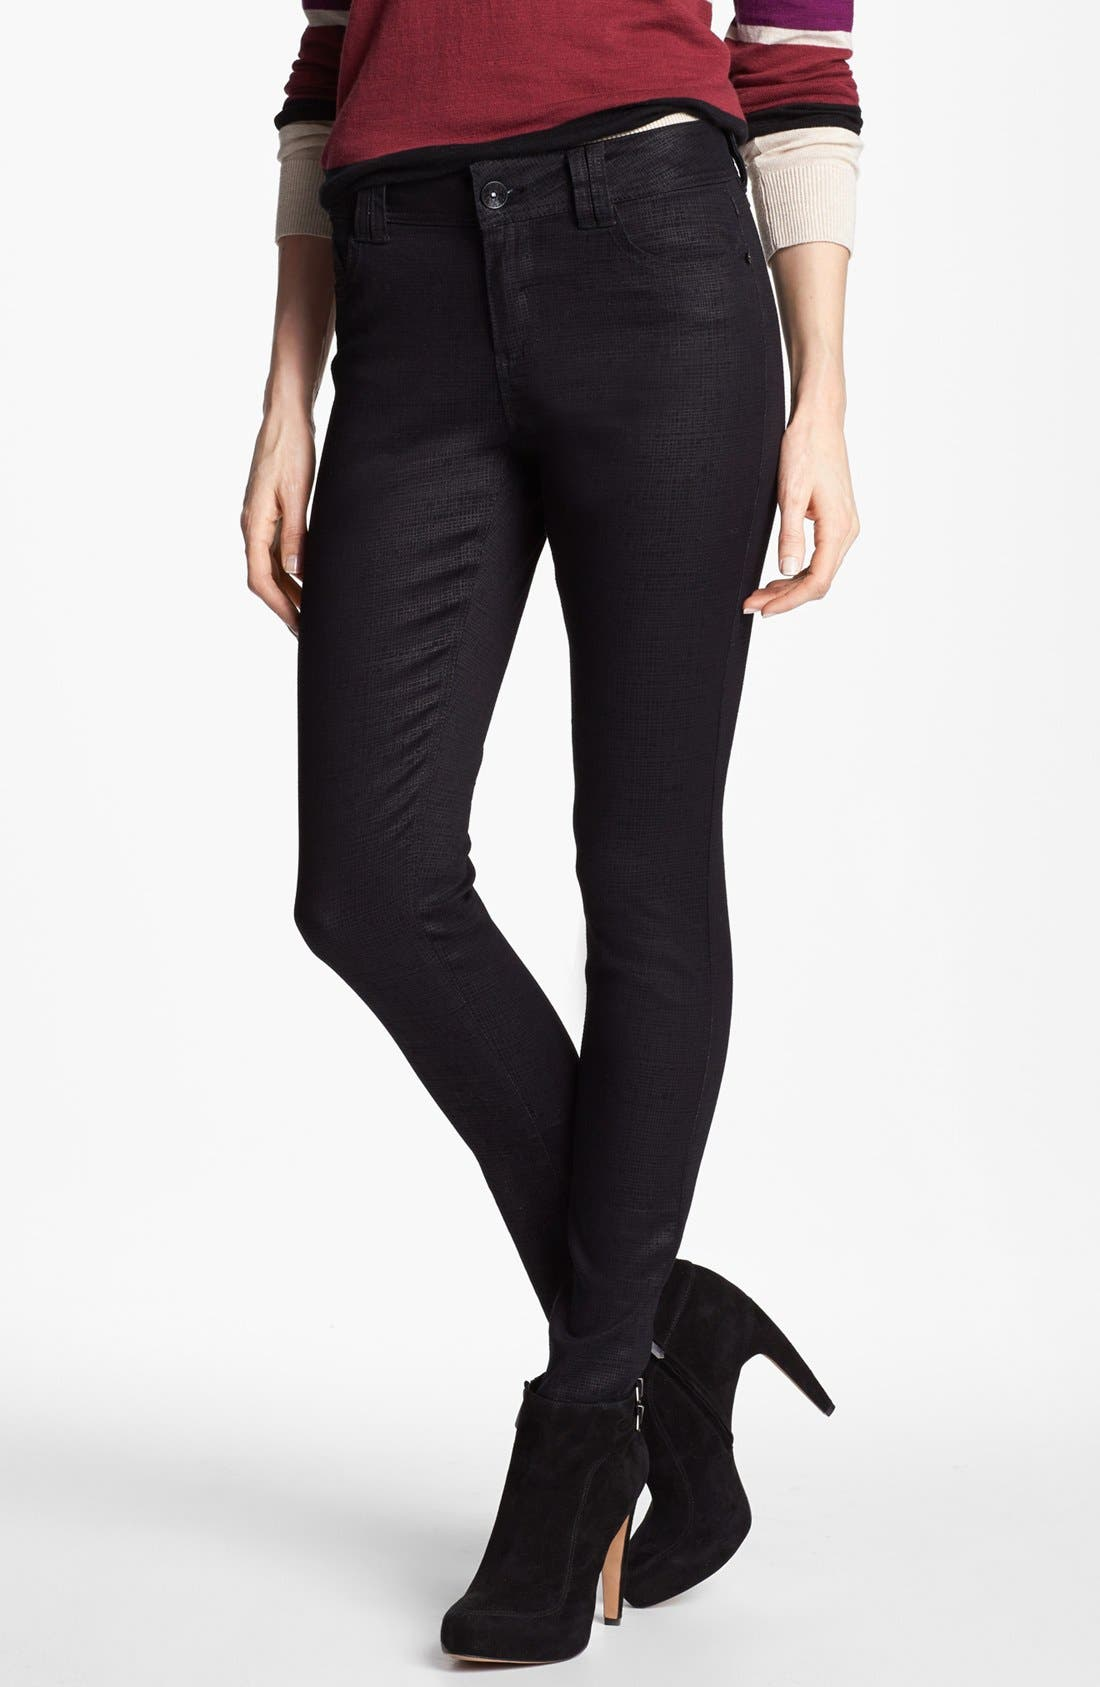 Alternate Image 1 Selected - Wit & Wisdom Graphic Coated Skinny Jeans (Black) (Nordstrom Exclusive)